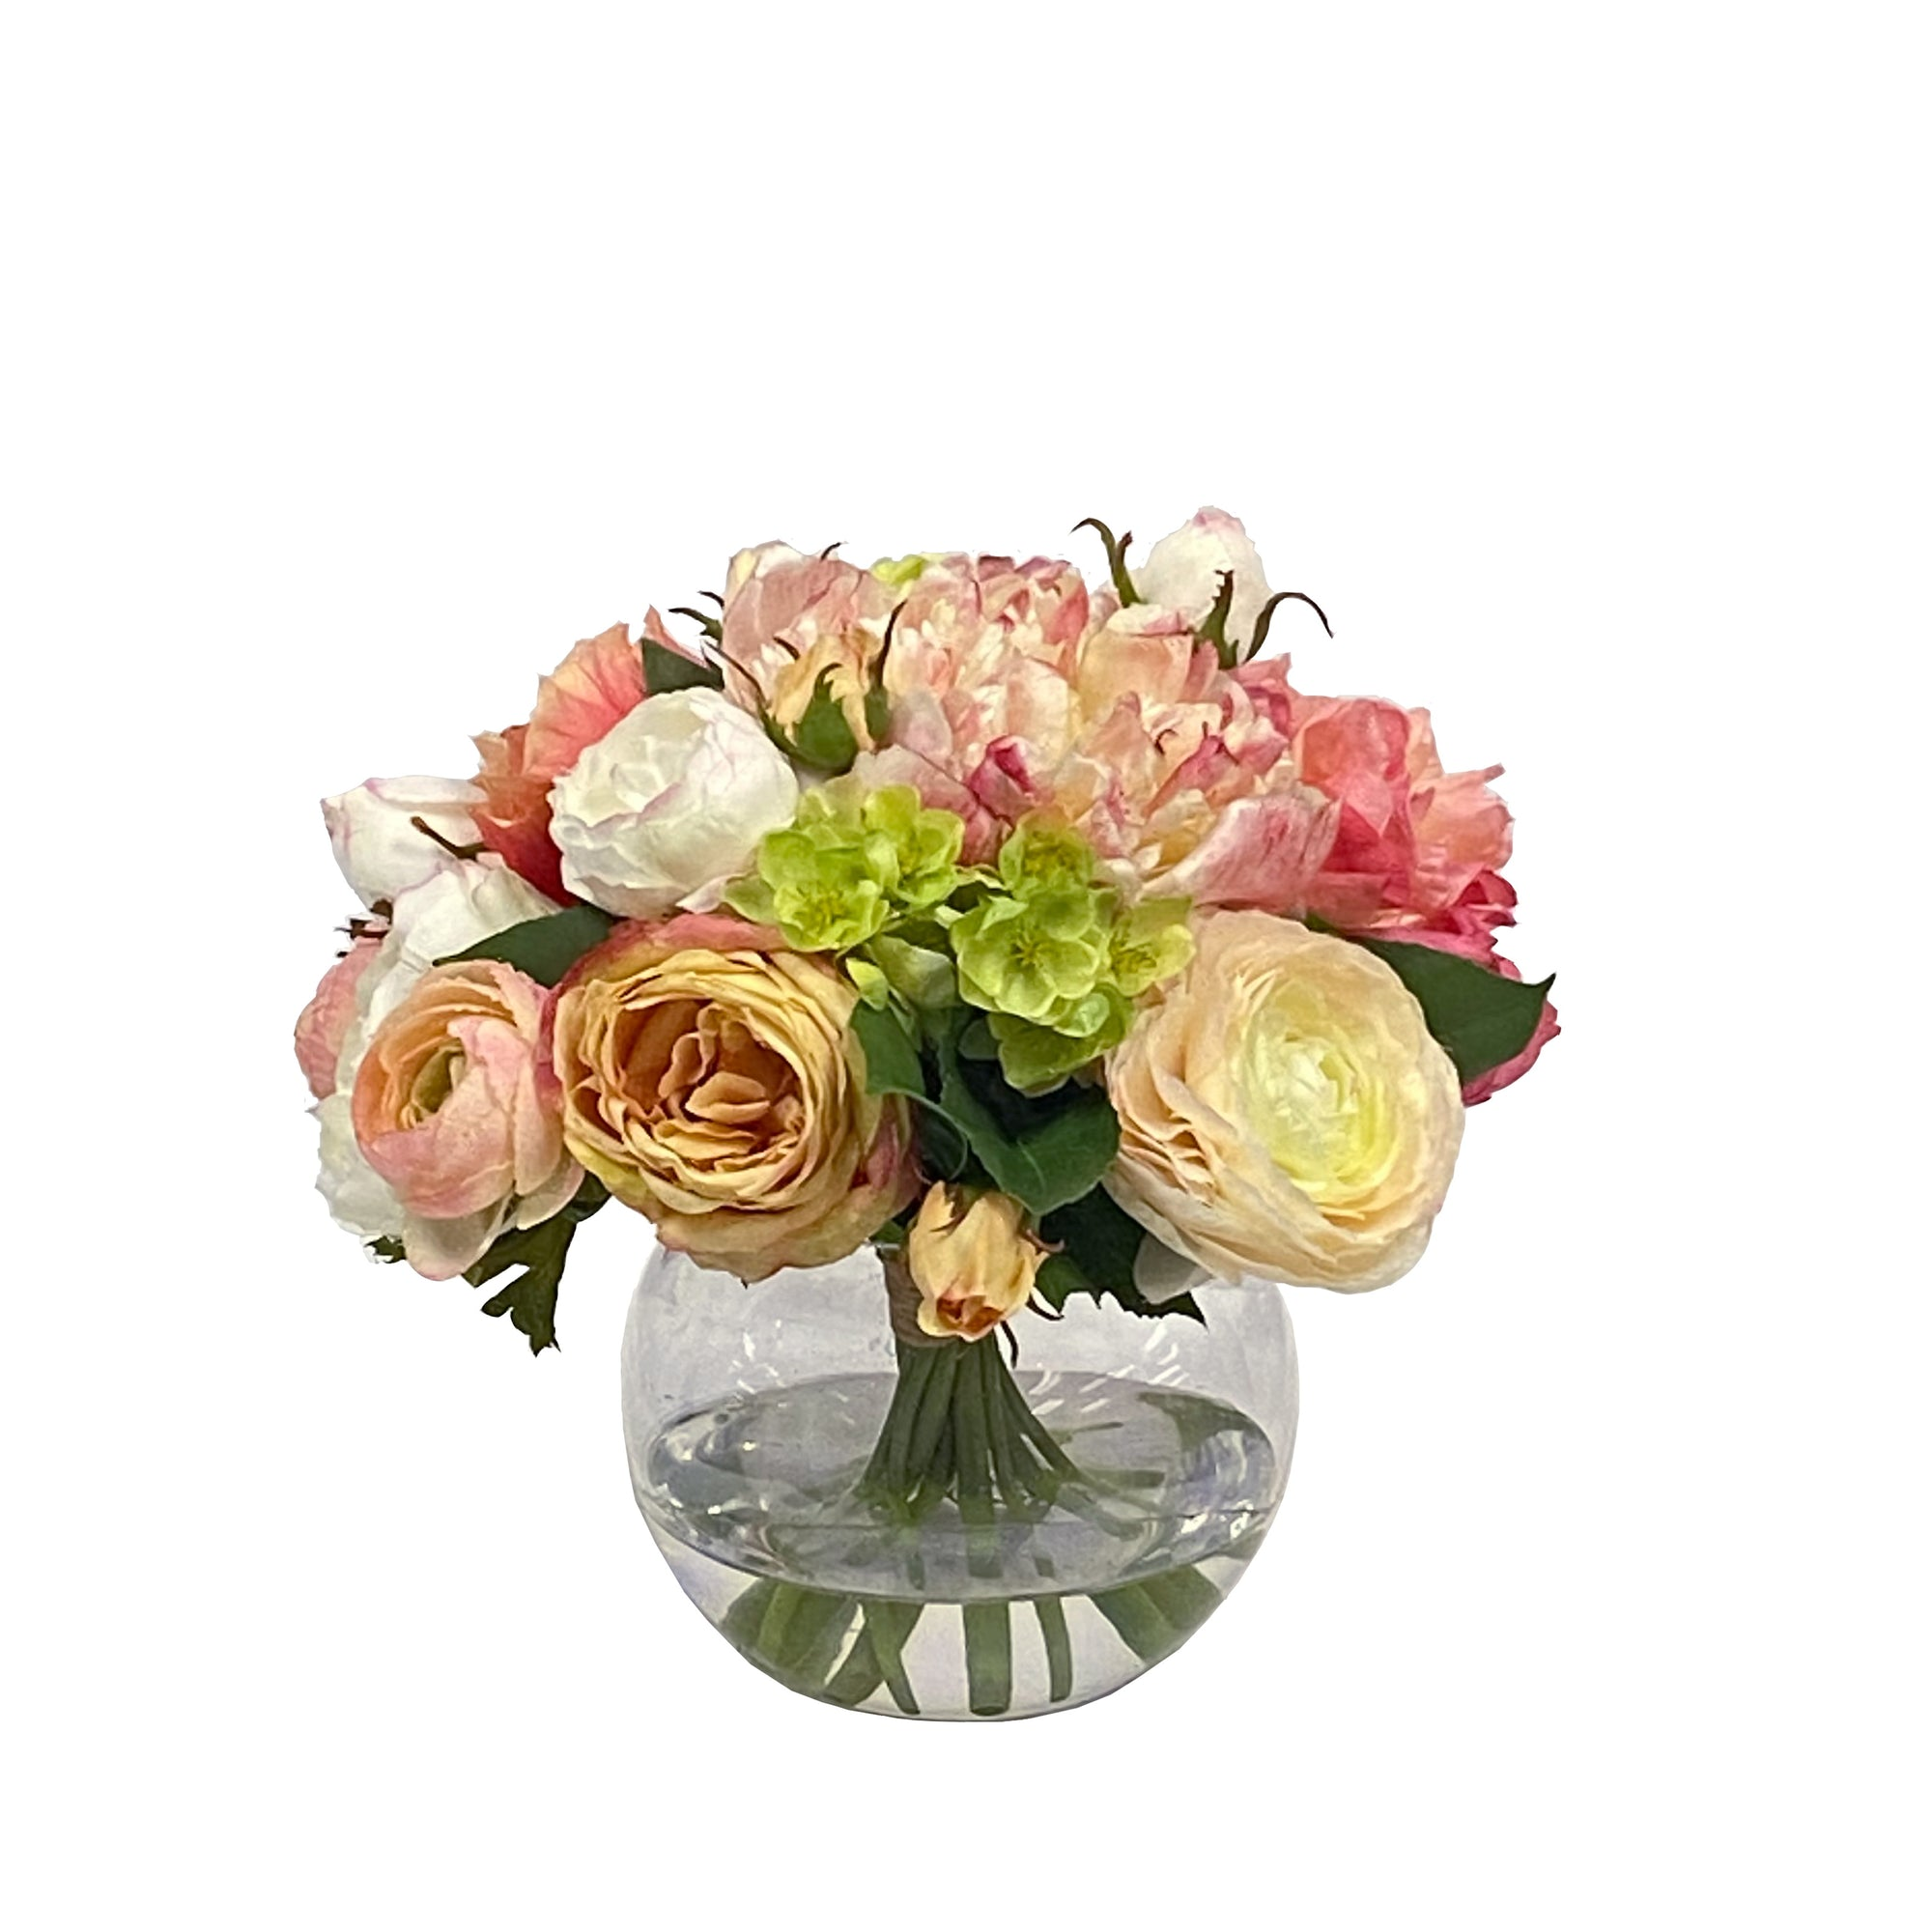 Mixed peonies and roses in clear ball glass vase